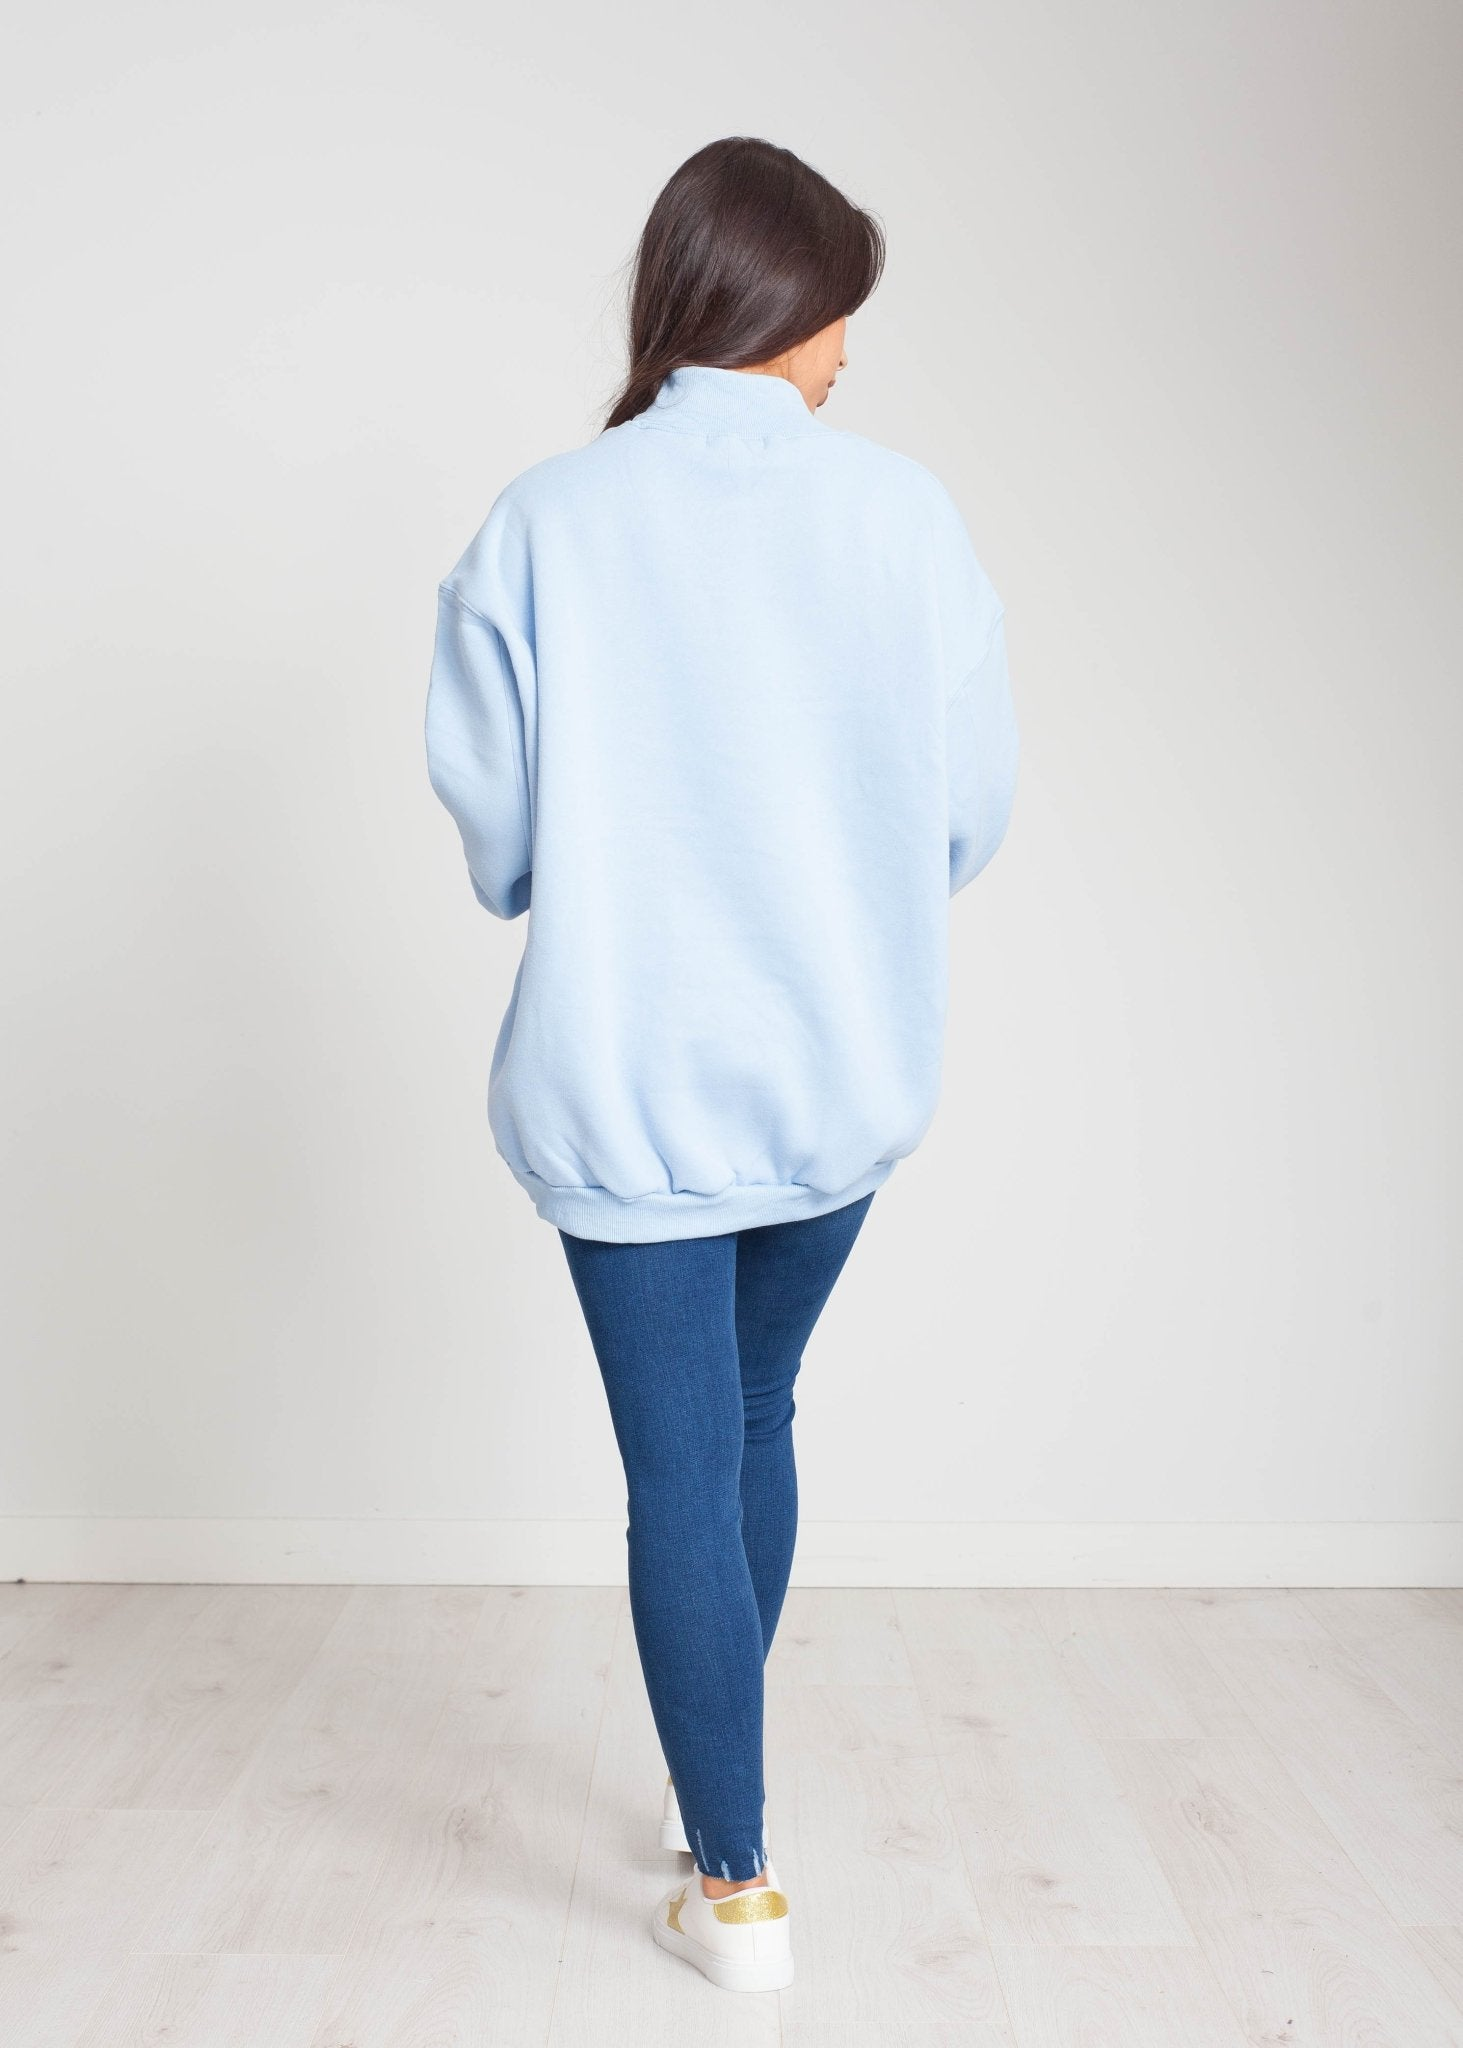 Priya Oversized Sweatshirt In Blue - The Walk in Wardrobe